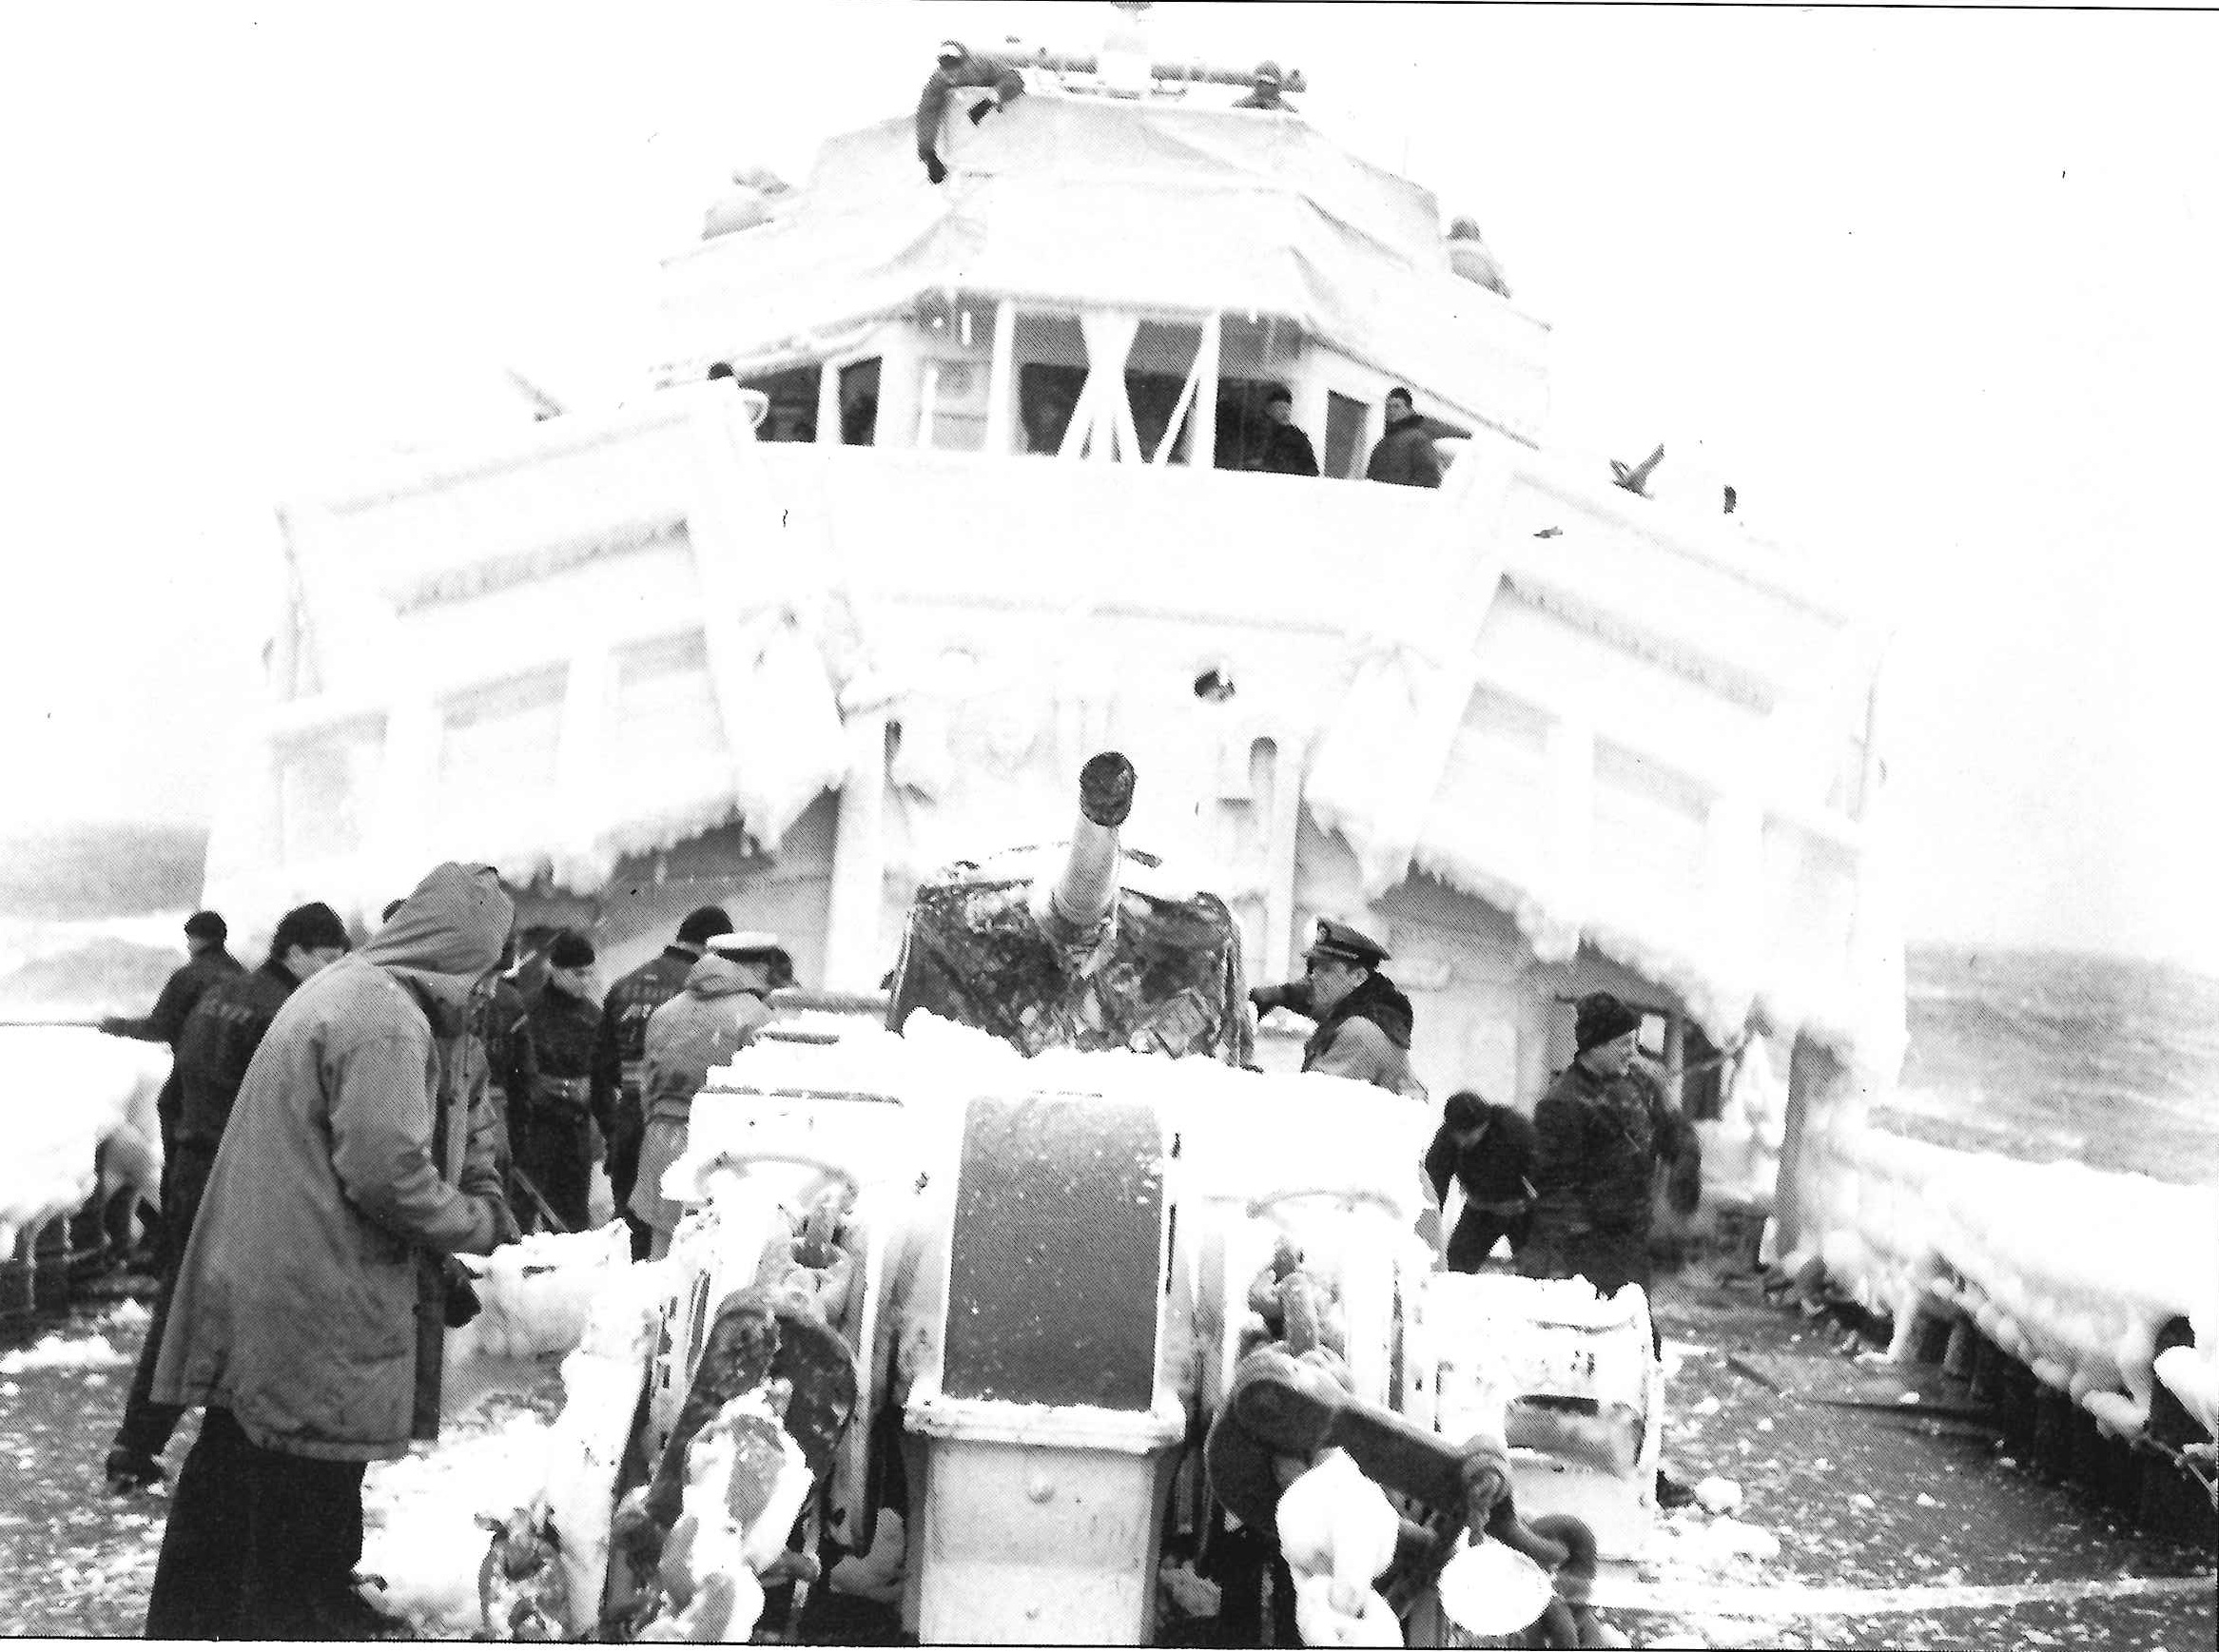 7. Northland's crew chipping ice. If allowed to accumulate the ice could make ships dangerously top-heavy. (U.S. Coast Guard)